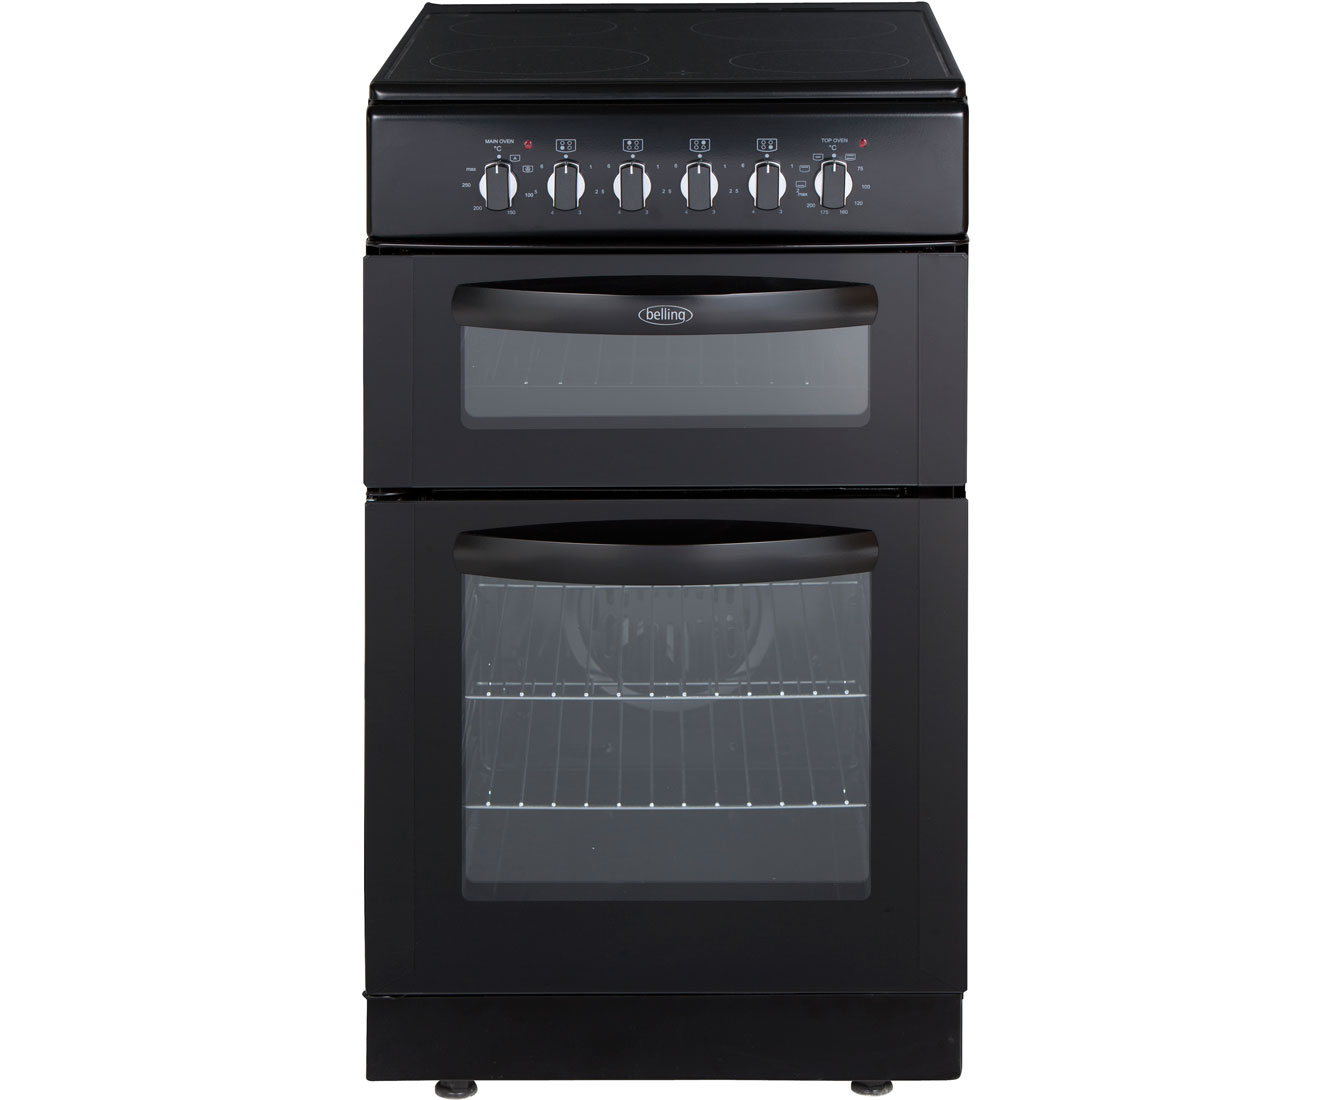 Belling FSEC50FDOB Electric Cooker with Ceramic Hob - Black